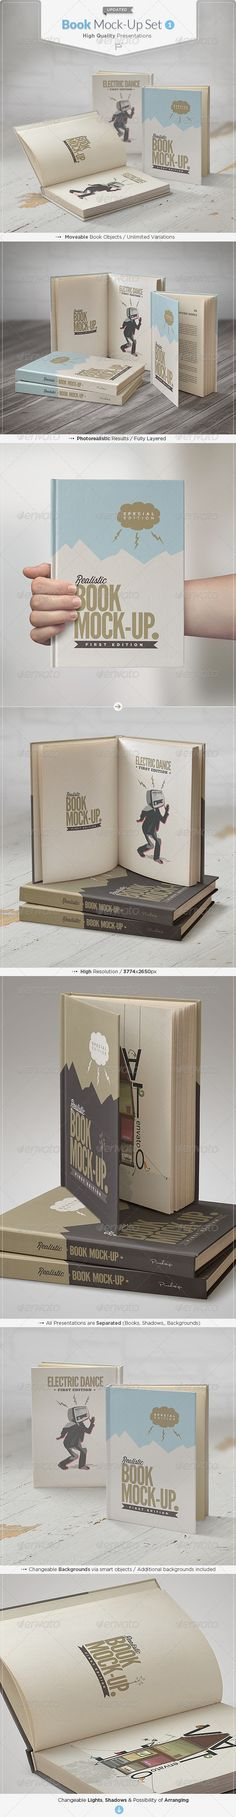 Book Mock-Up Set #bookmockup #mockup Download: http://graphicriver.net/item/book-mockup-set/5237157?ref=ksioks